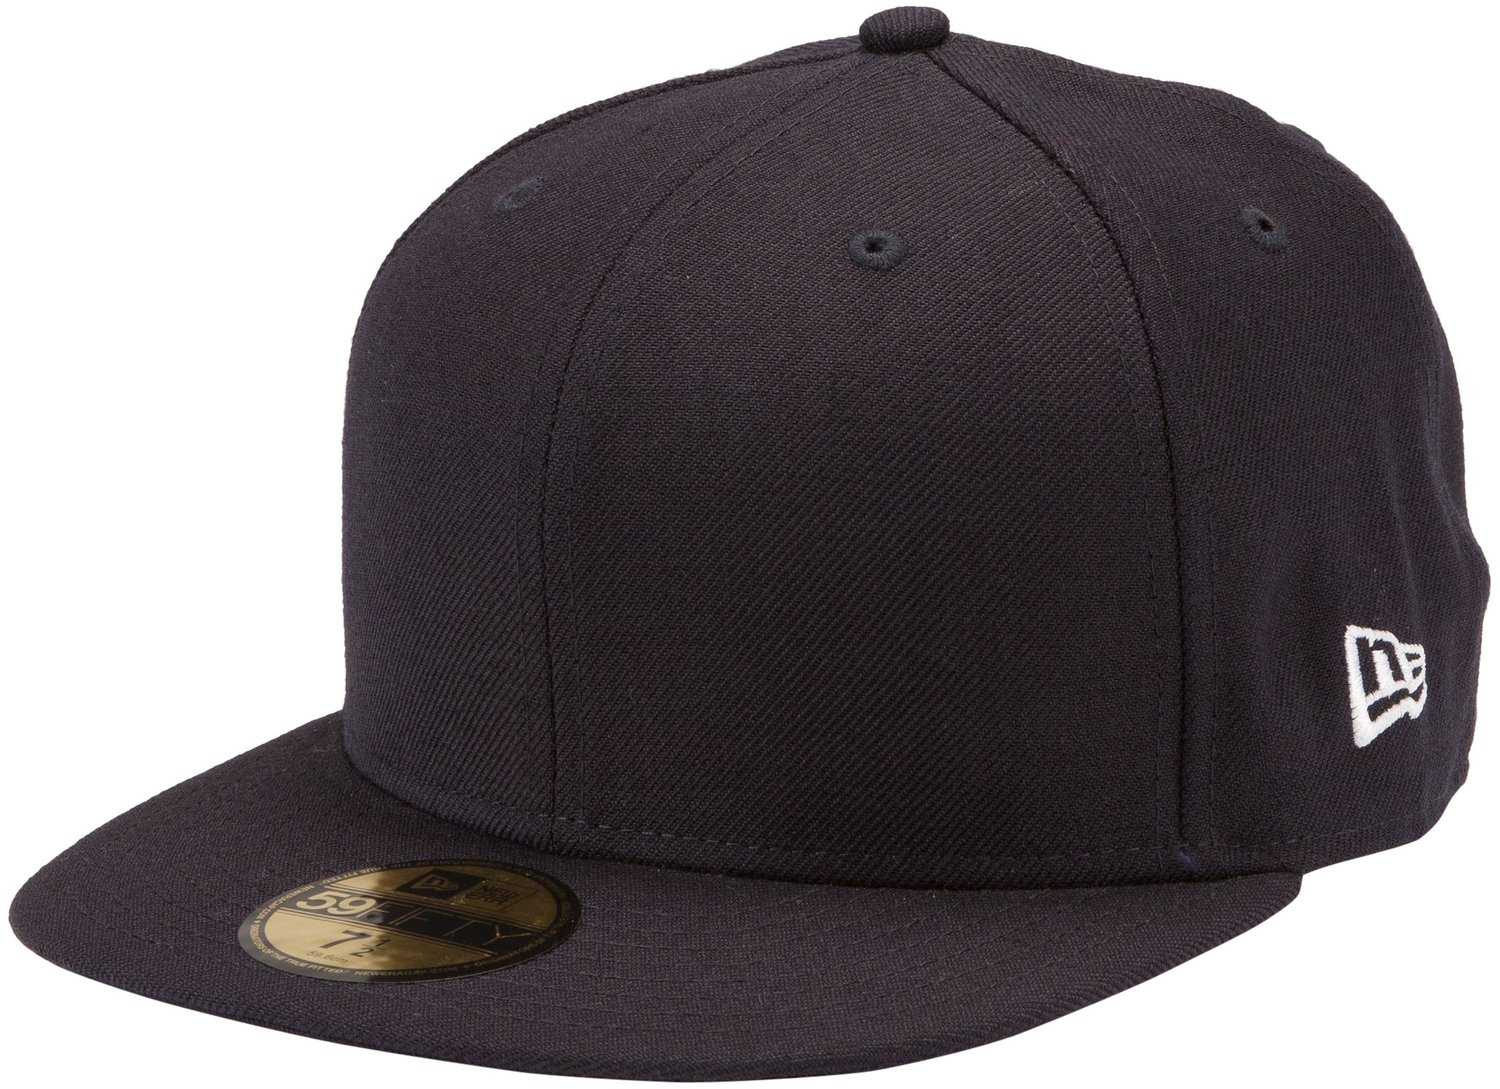 08e587756 Cheap Blank New Era 59fifty, find Blank New Era 59fifty deals on ...